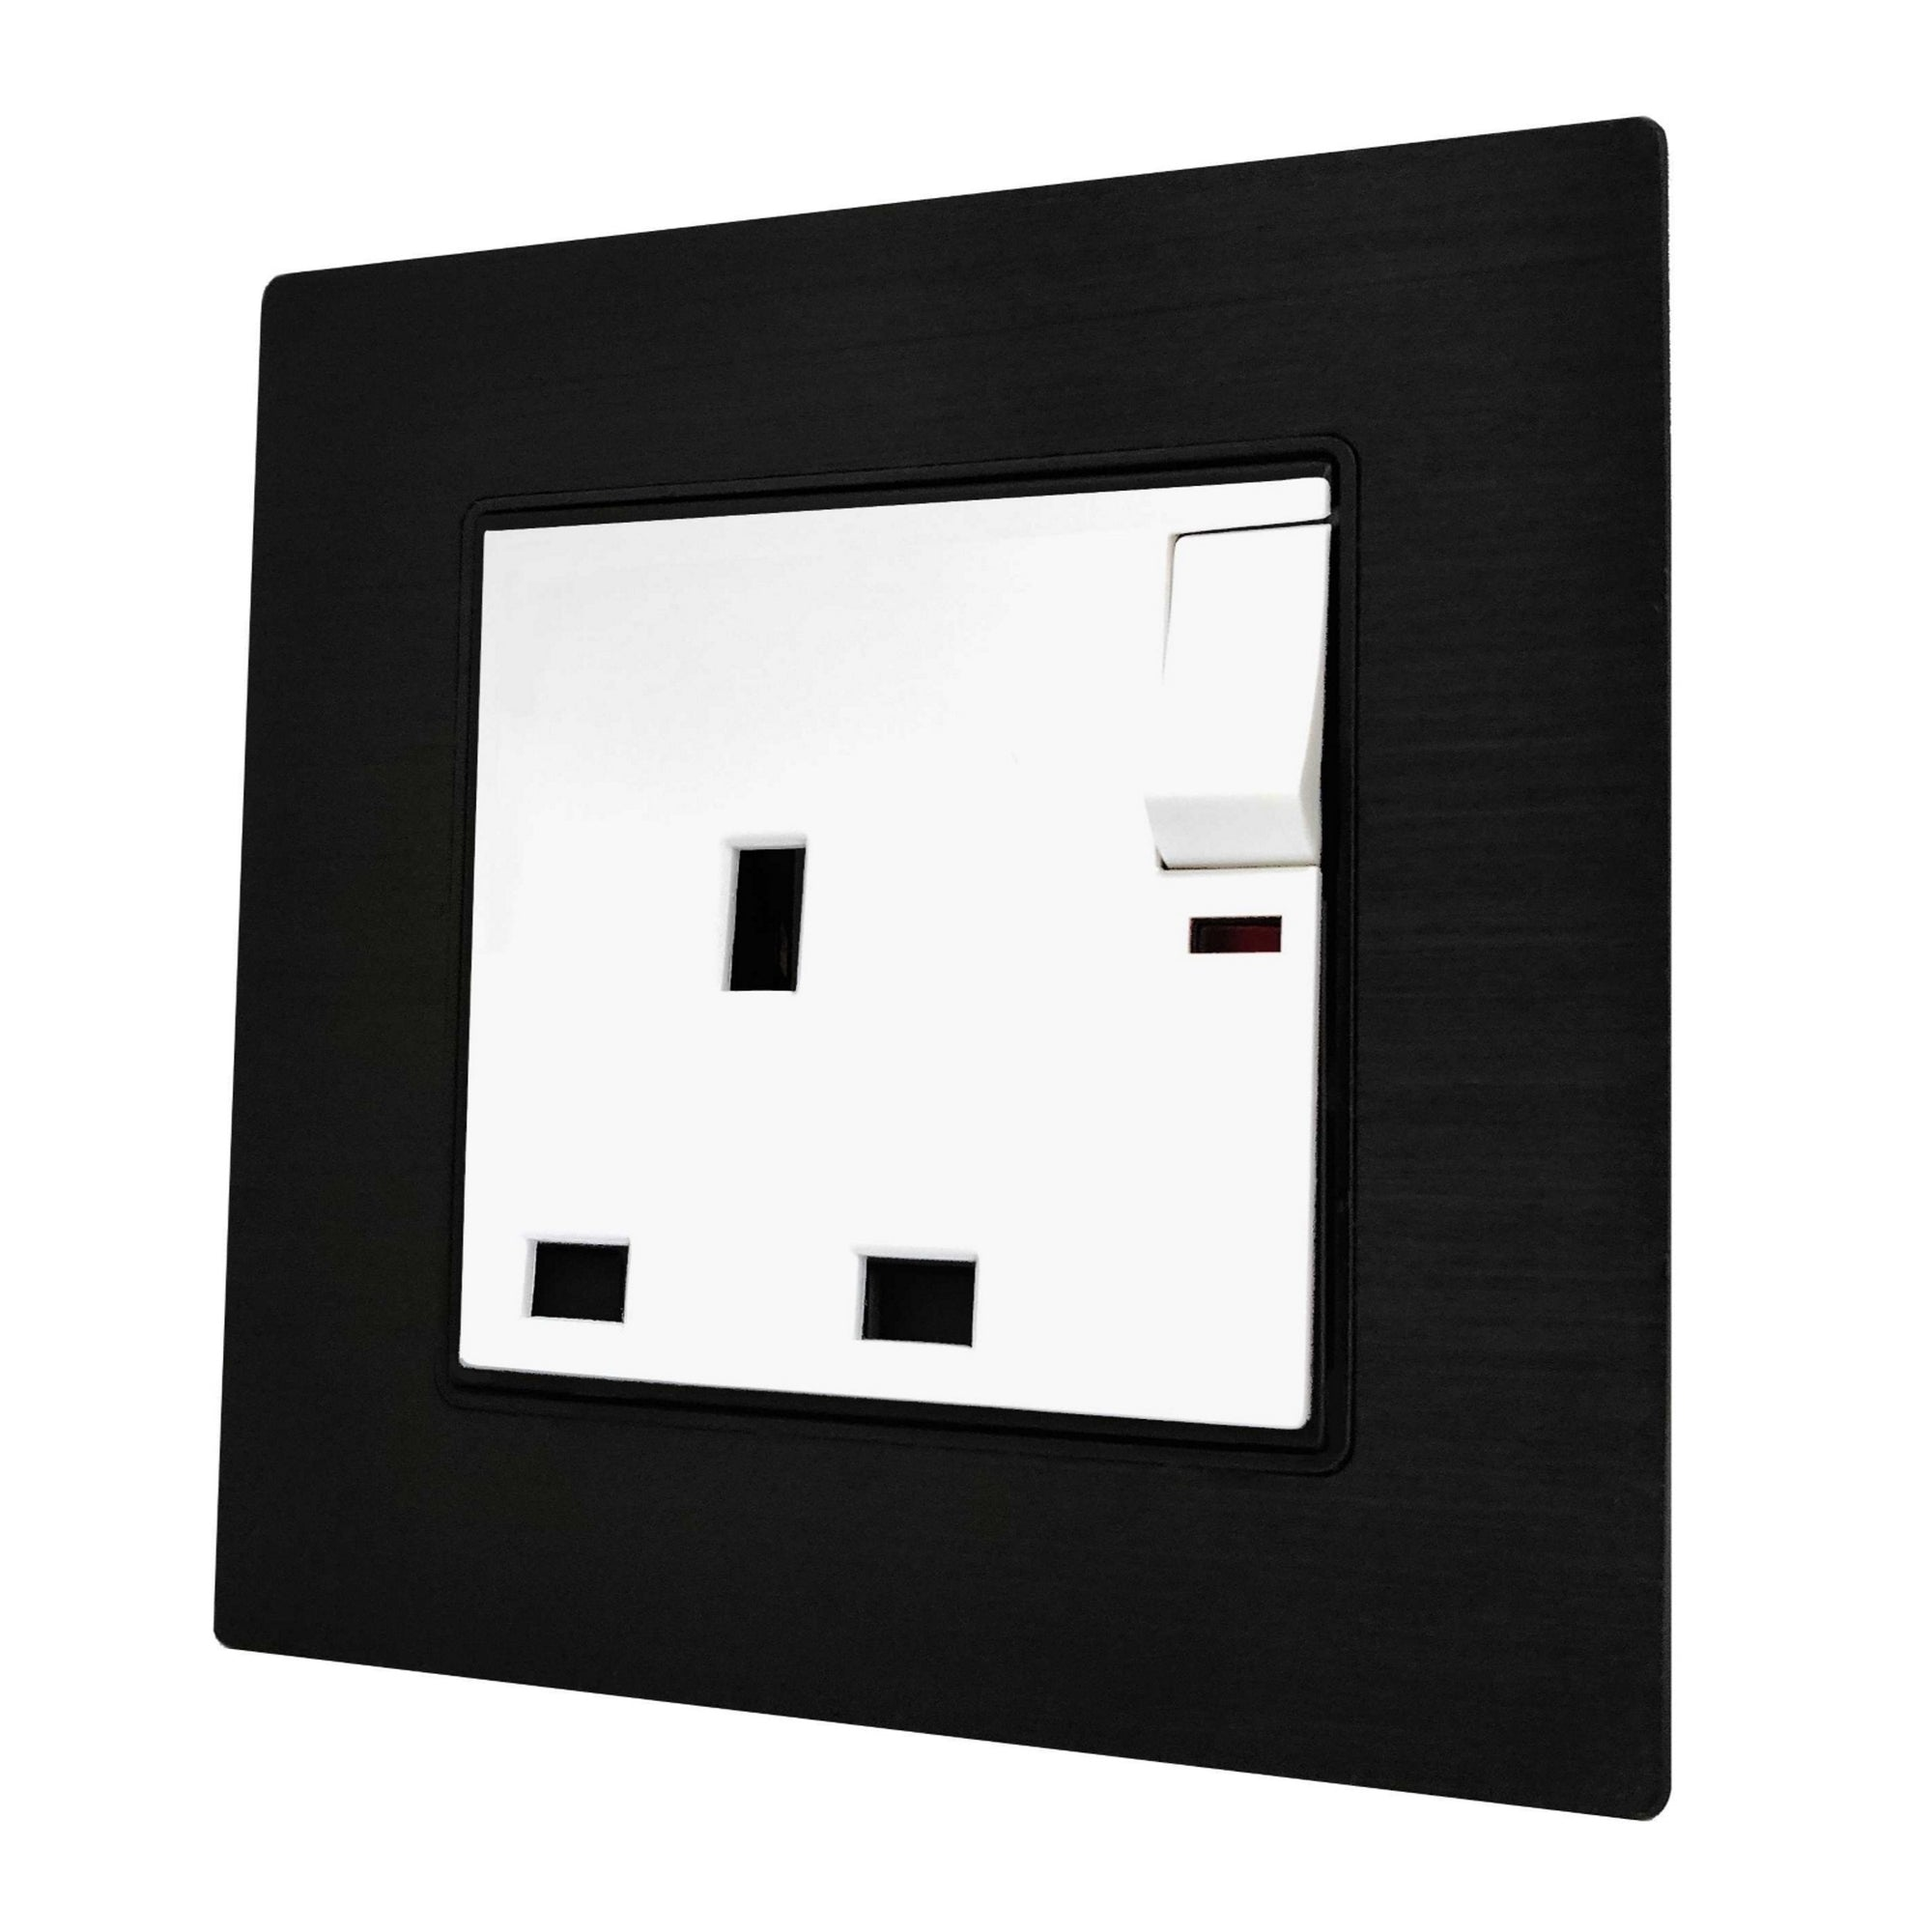 Single UK 13A 3-Pin AC Wall Power Socket in  Black Brushed Alum Frame & White Centre